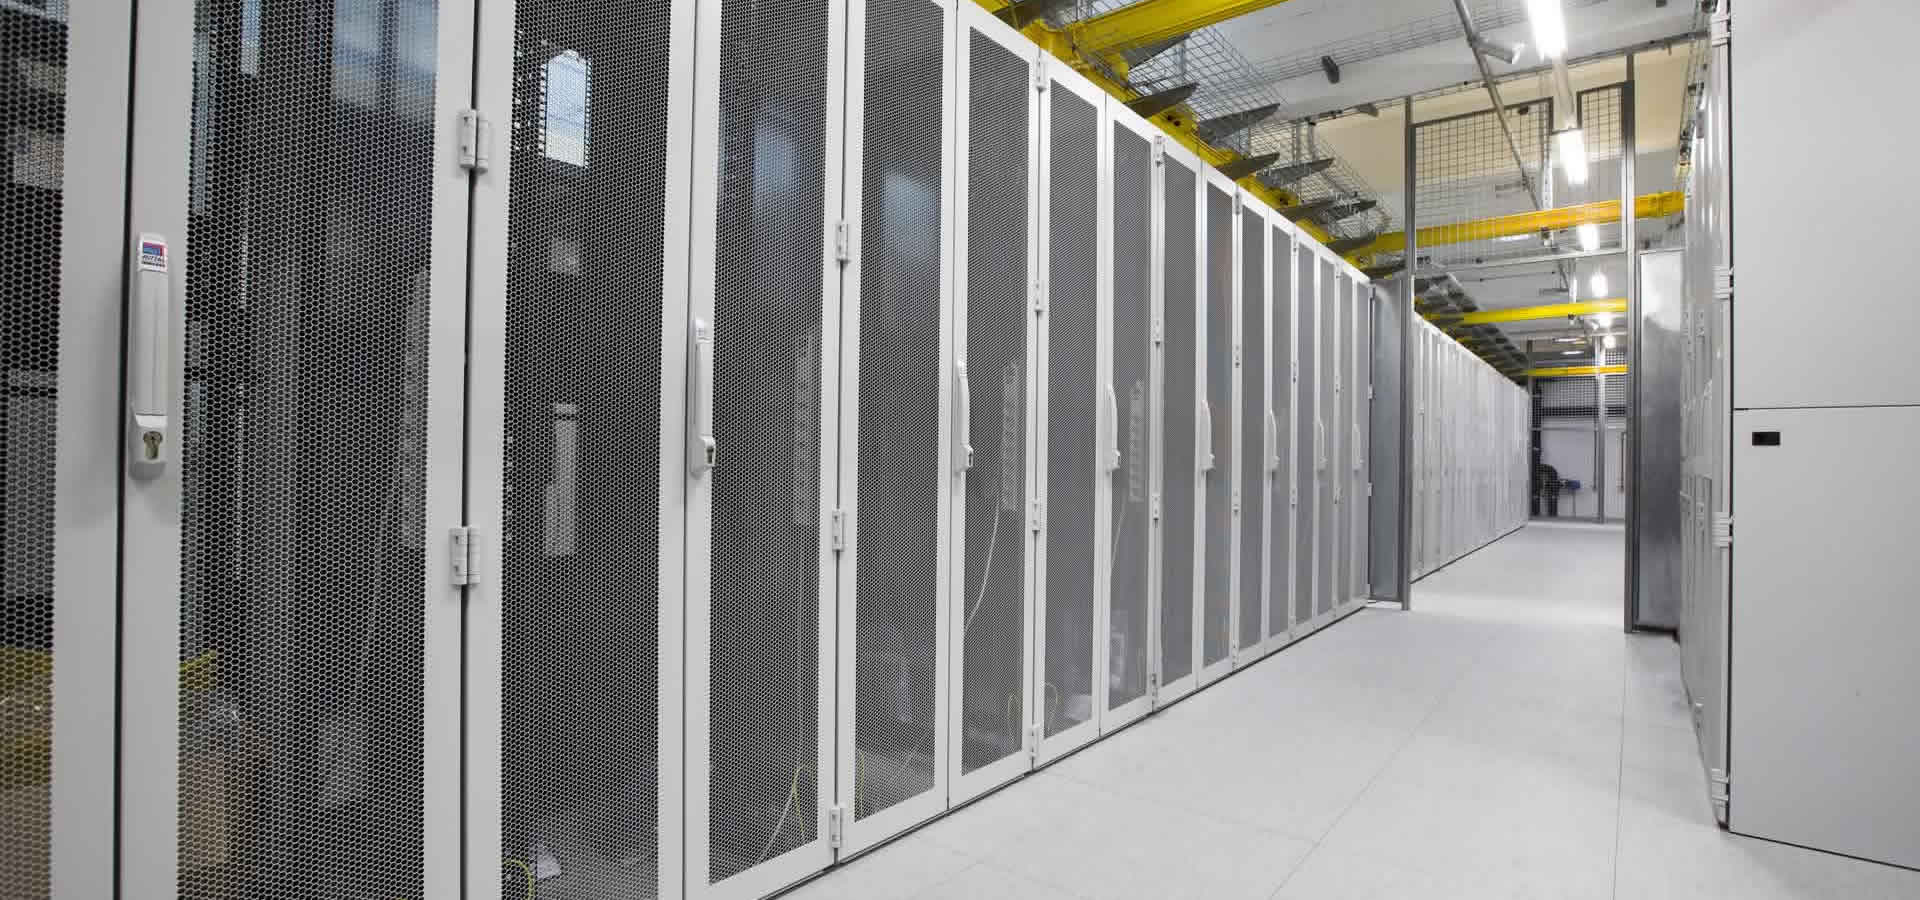 Server-Schränke im LINZ AG TELKEOM IT- und Data Center